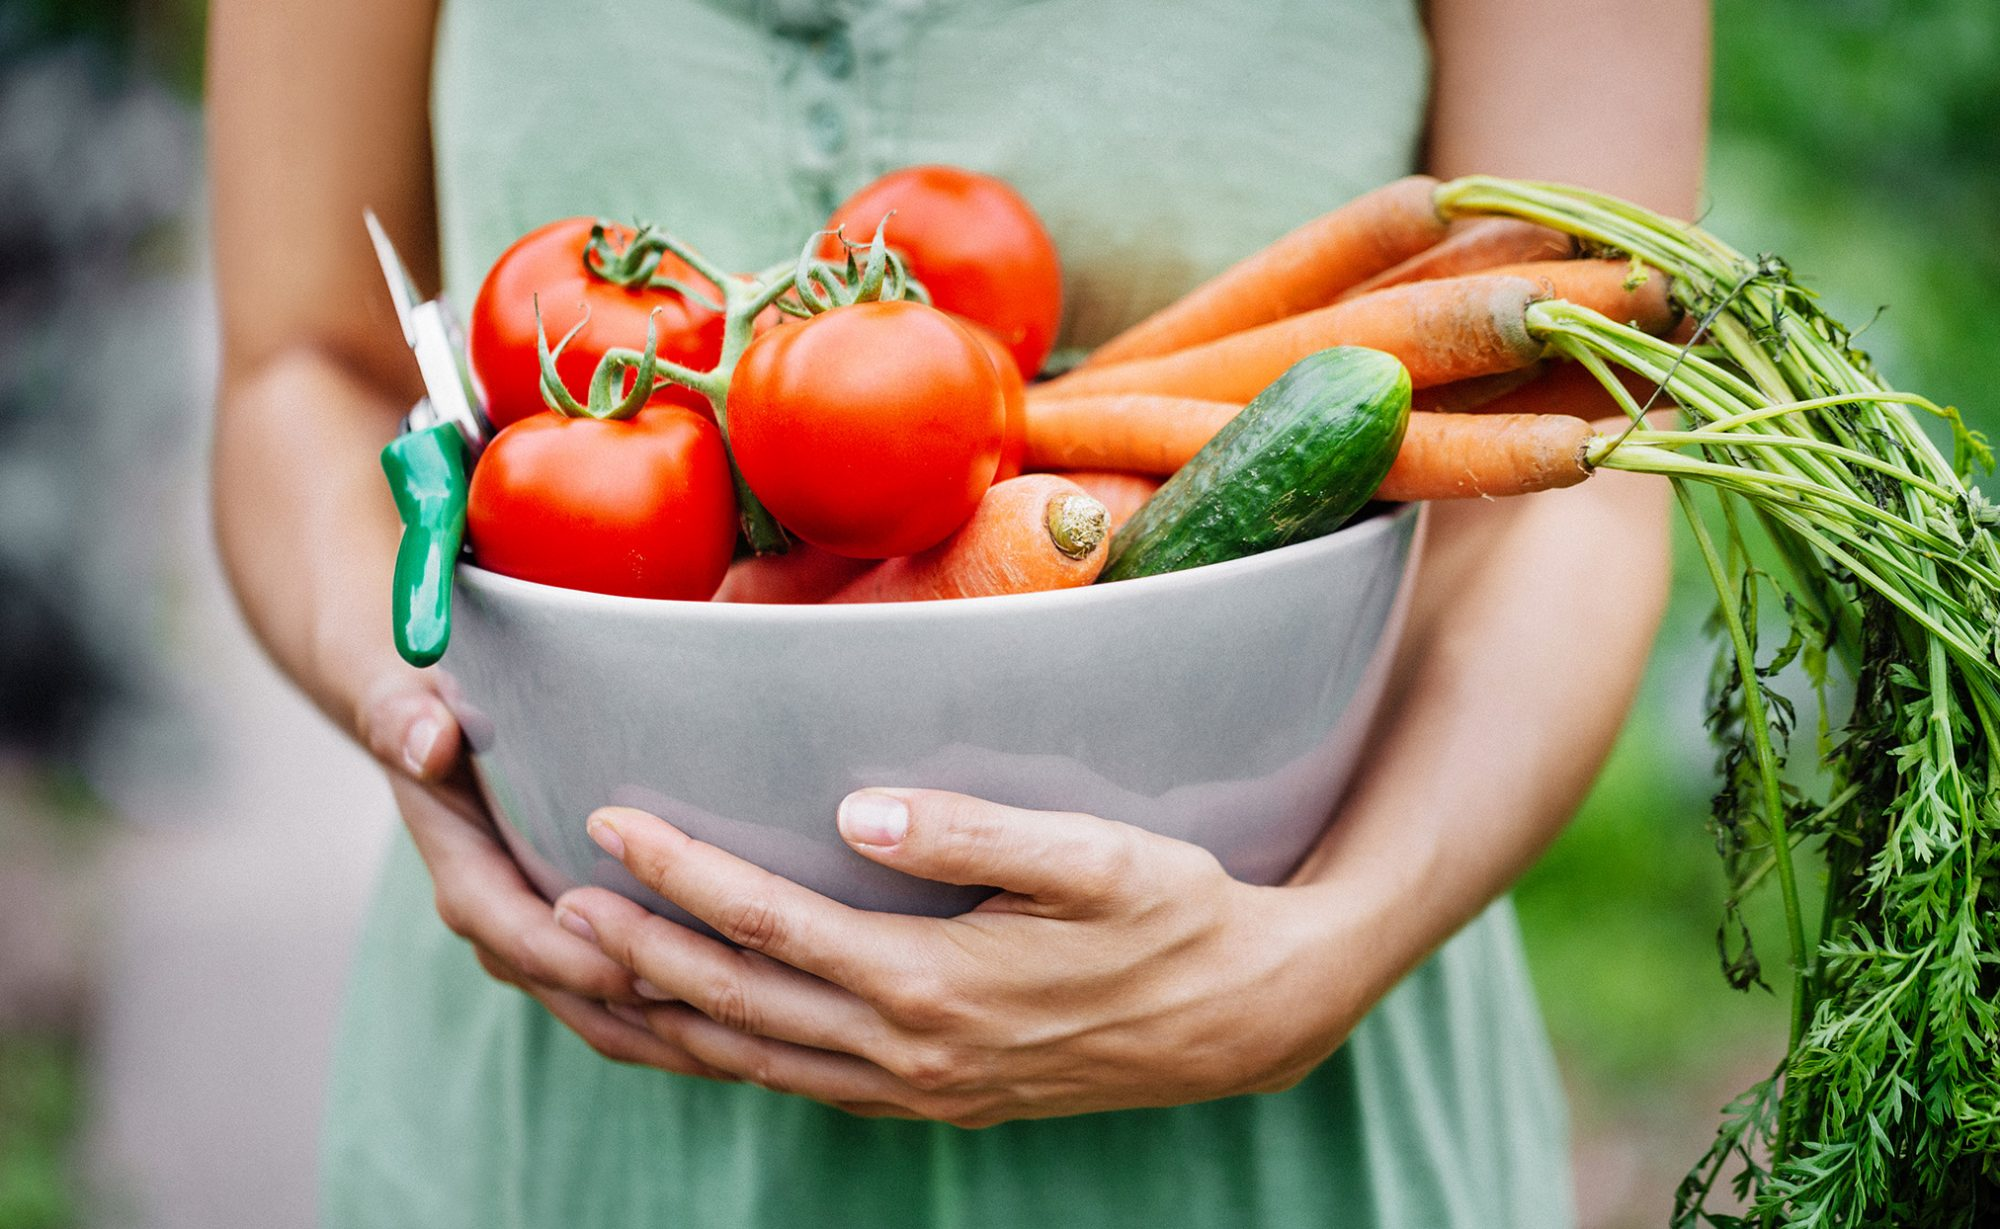 woman holding bowl of vegetables harvested from garden